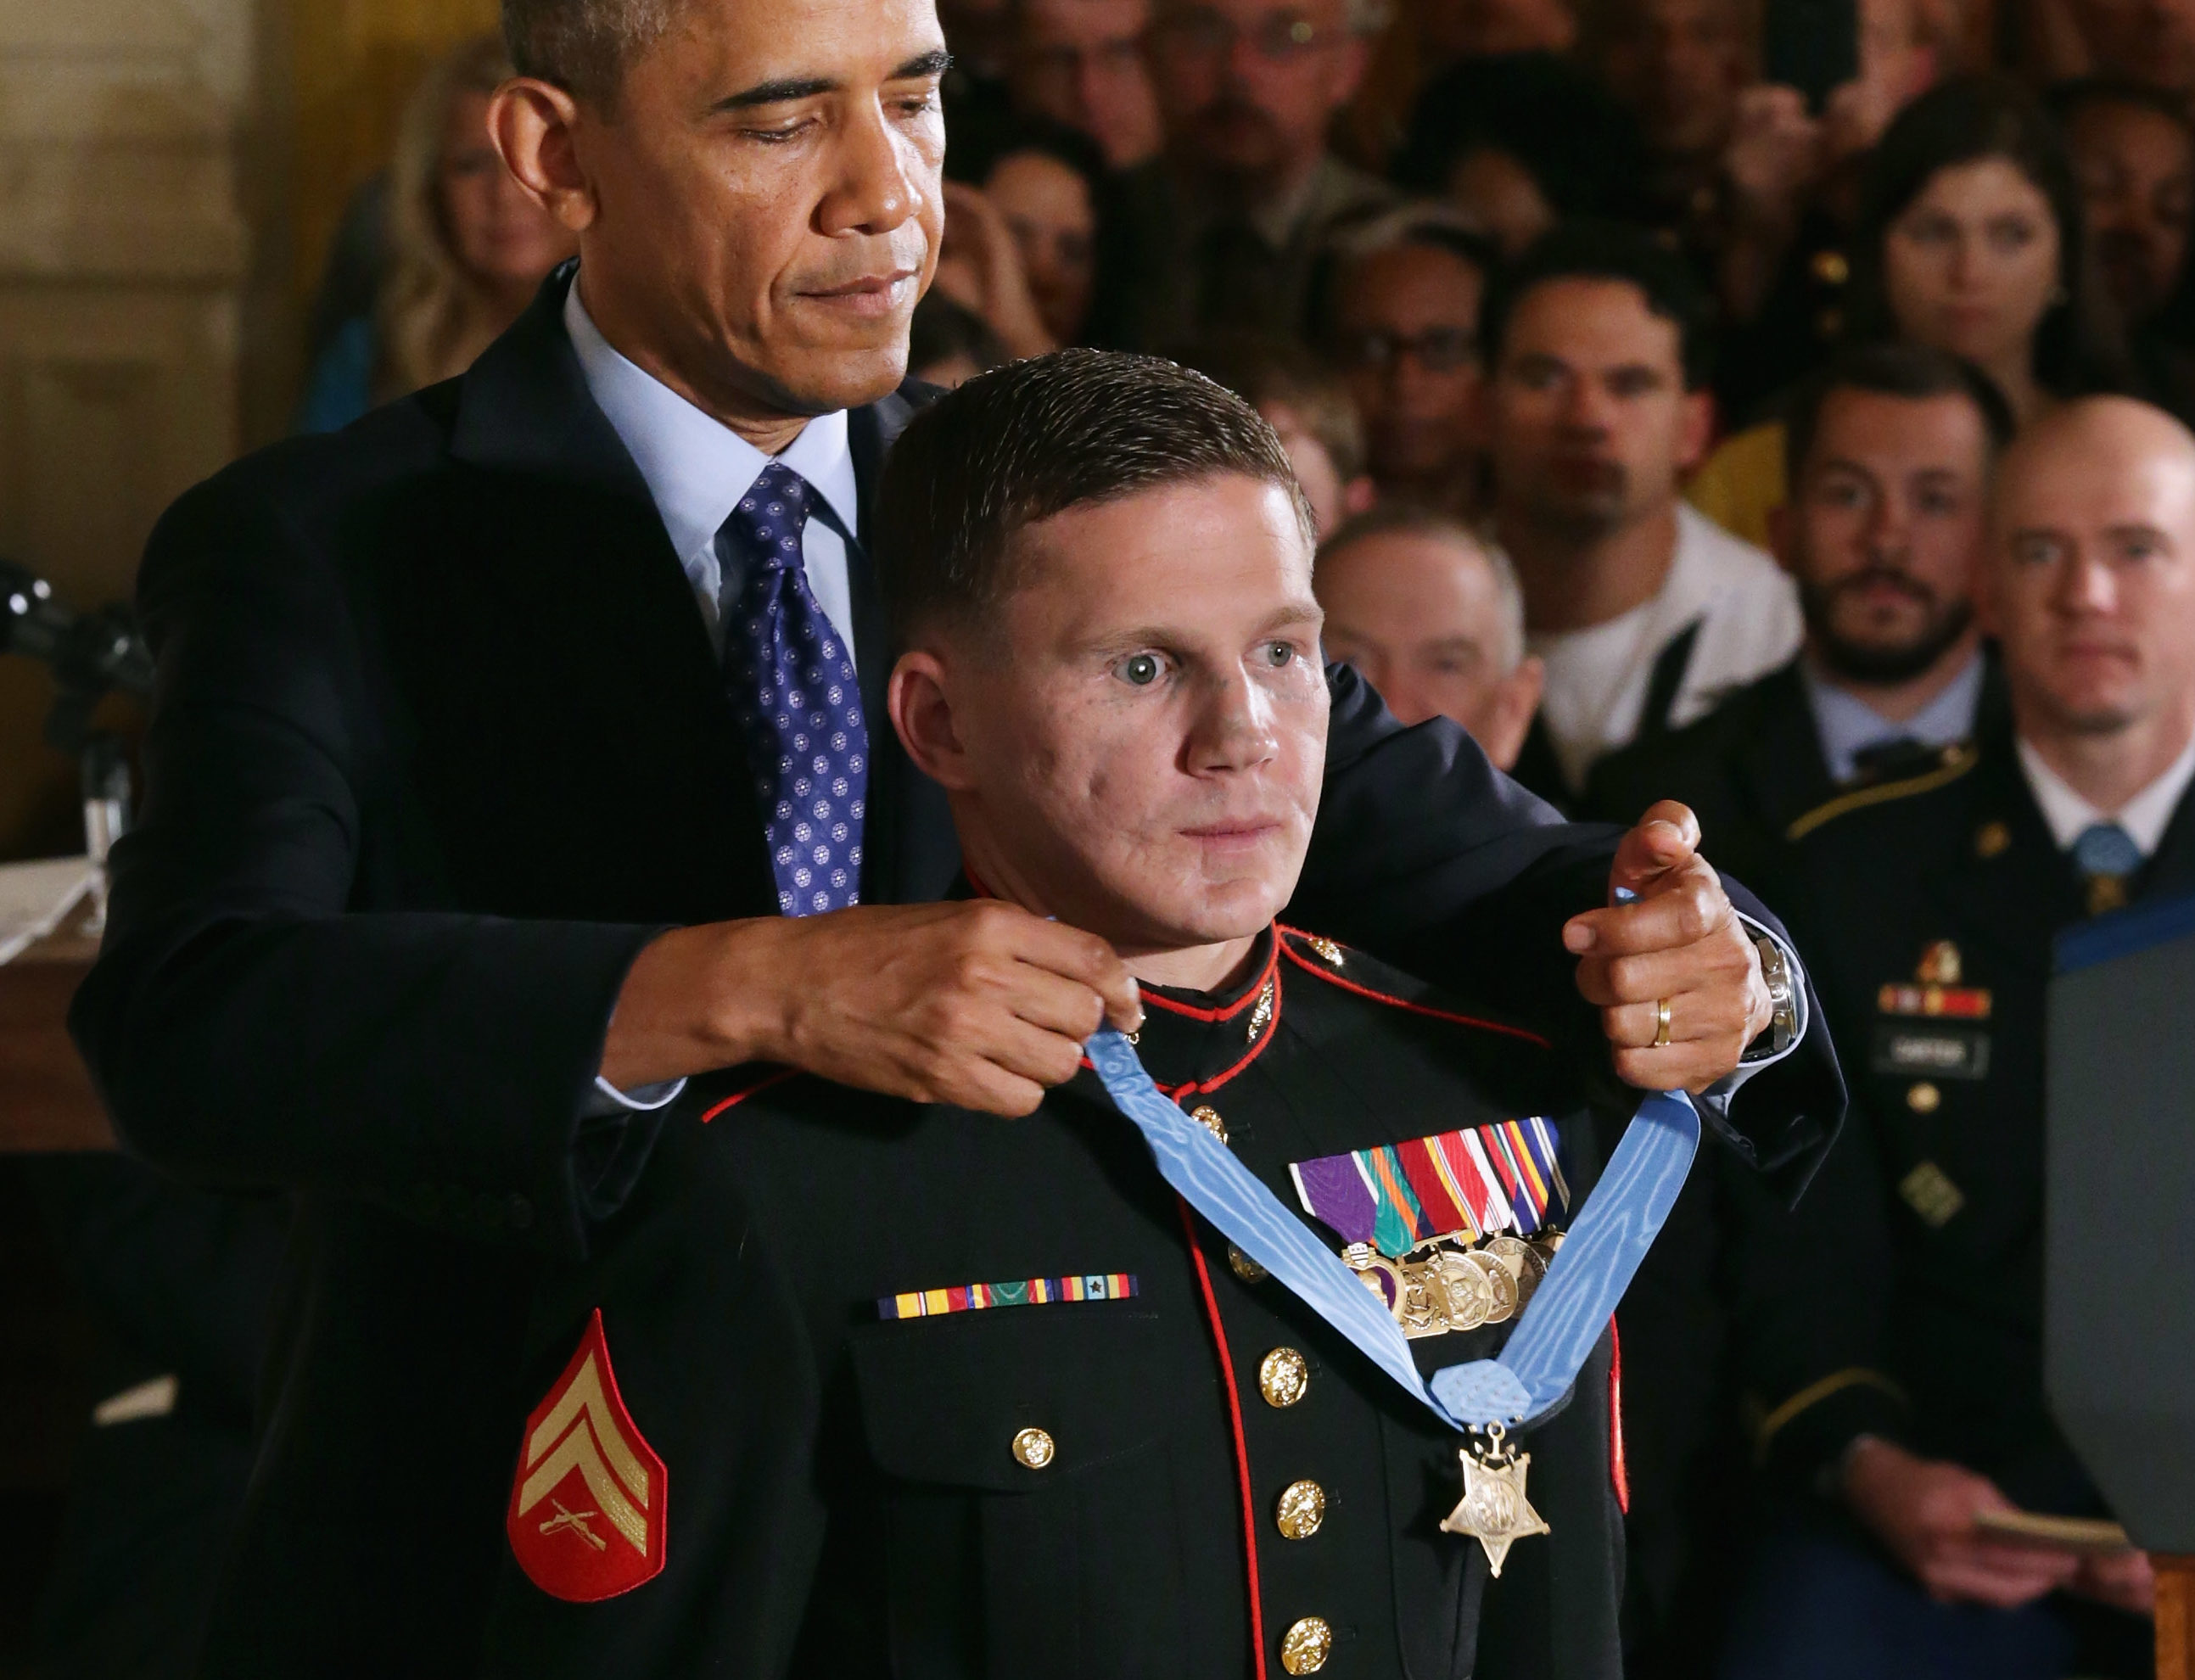 How Medal Of Honor Recipient Kyle Carpenter Recovered From Jumping On A Grenade